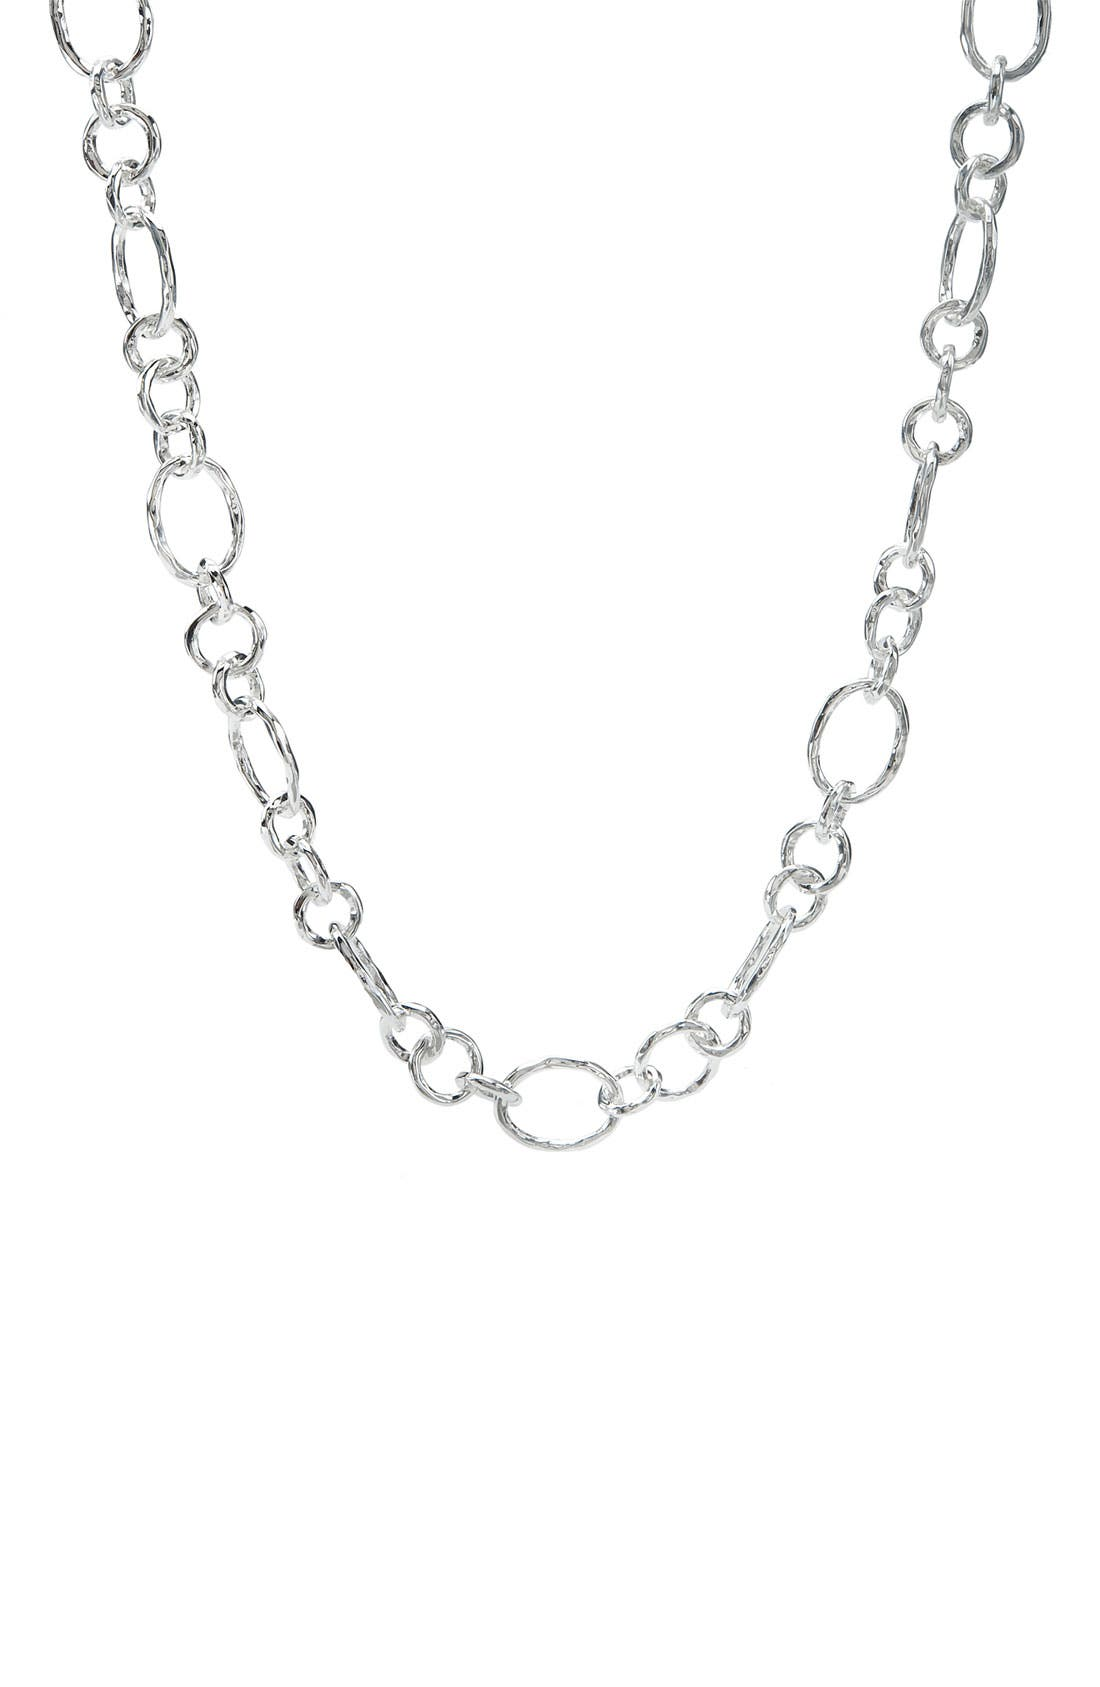 Main Image - Ippolita 'Glamazon' Chain Necklace